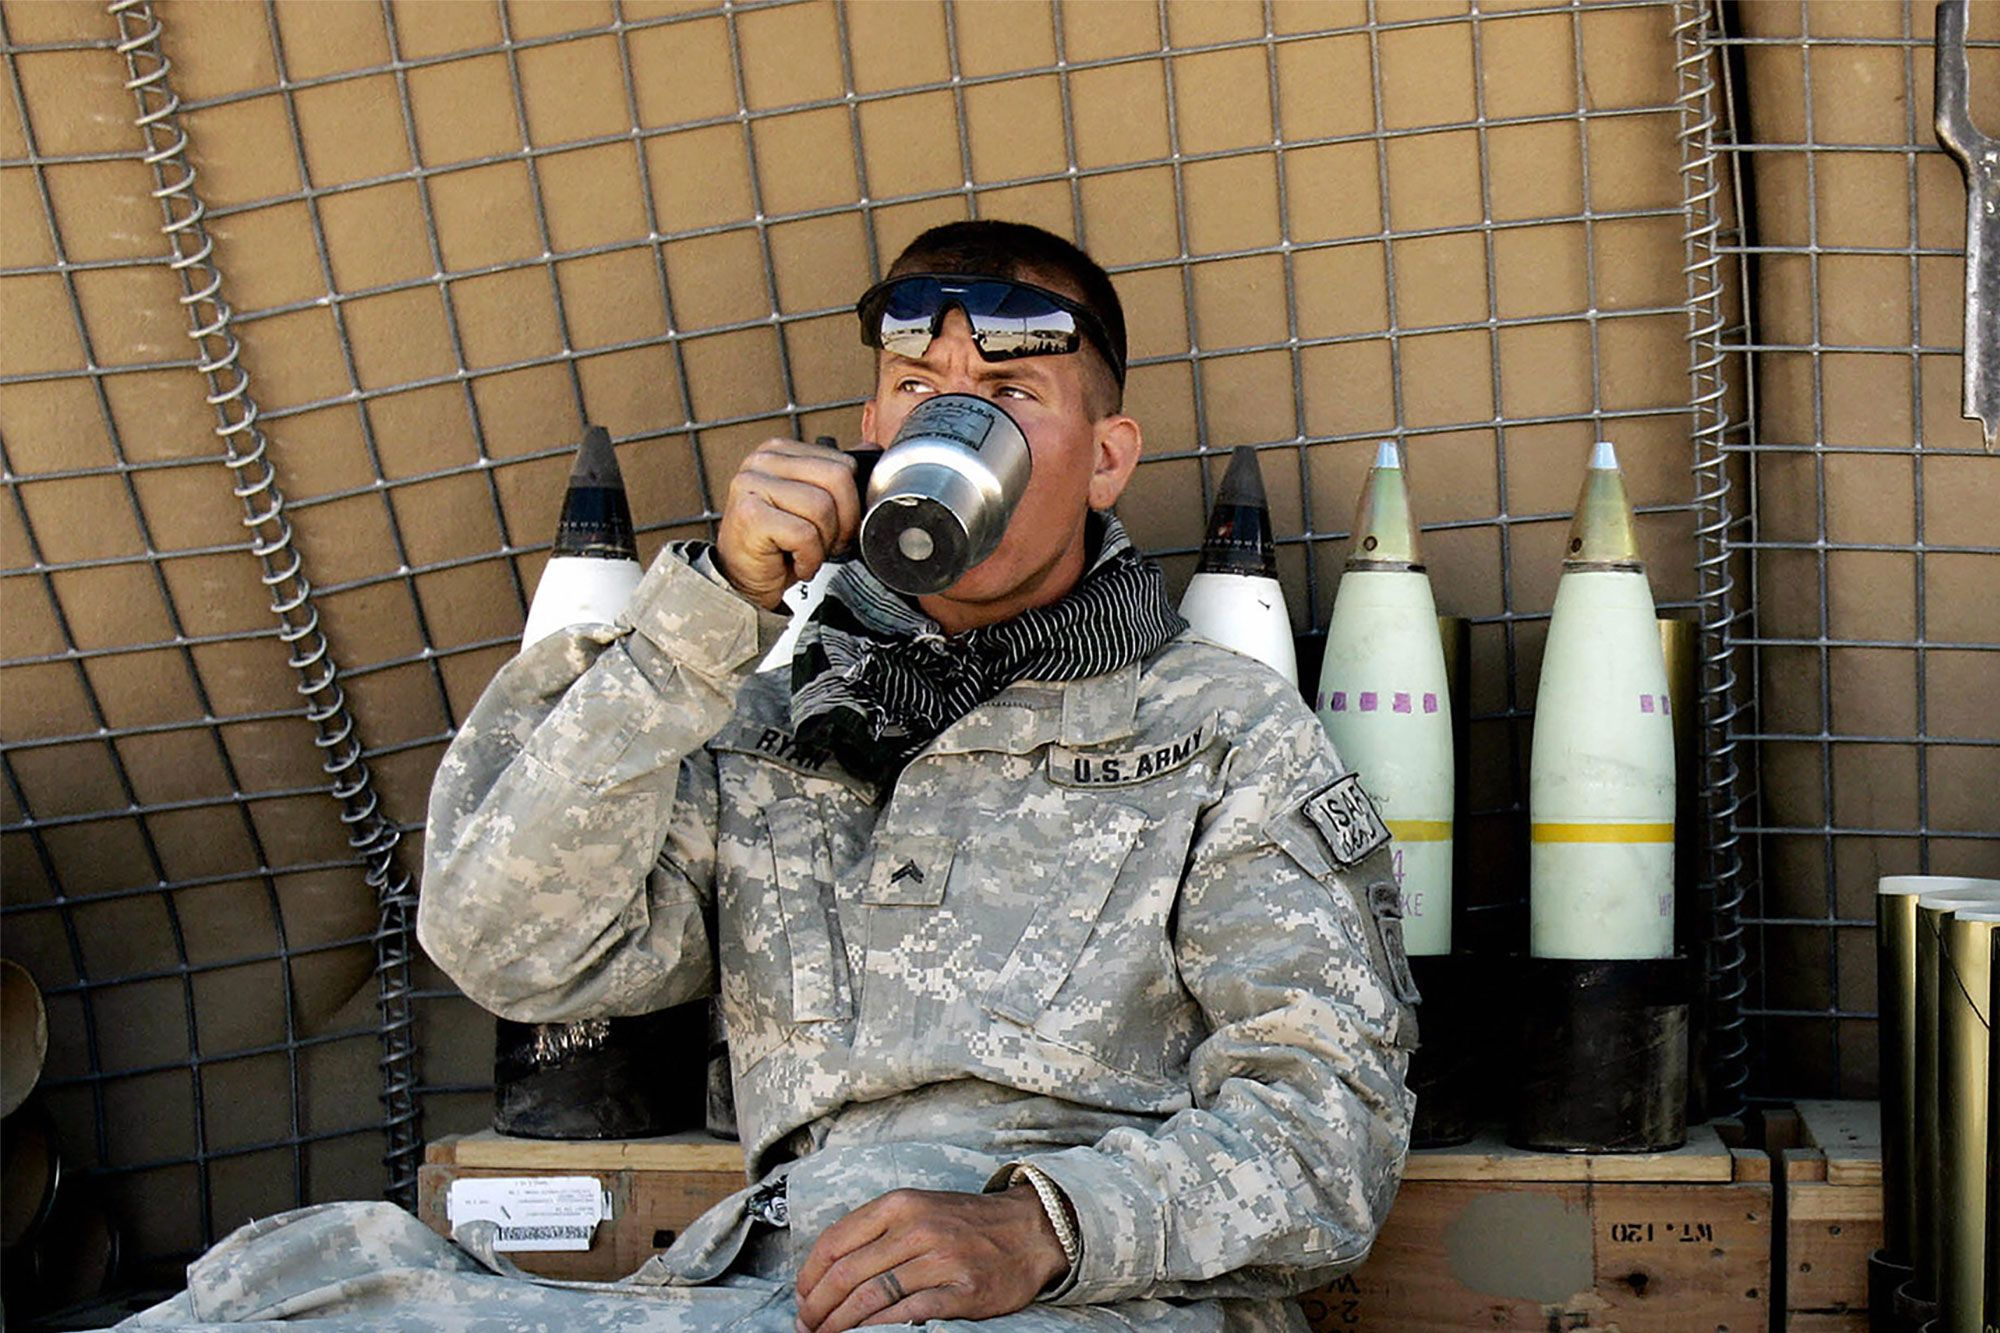 The U.S. Army Has Developed an Algorithm That Tells You Exactly How Much Coffee You Should Drink to Stay Awake